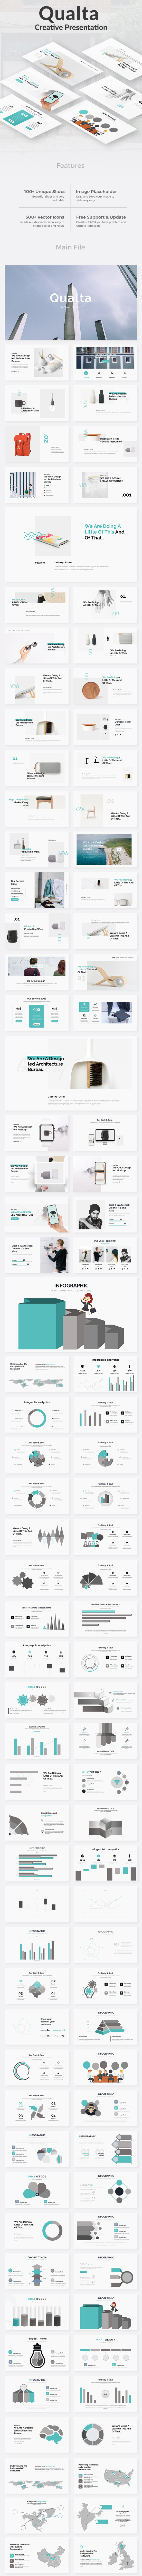 Qualta Creative Powerpoint Template - Creative PowerPoint Templates